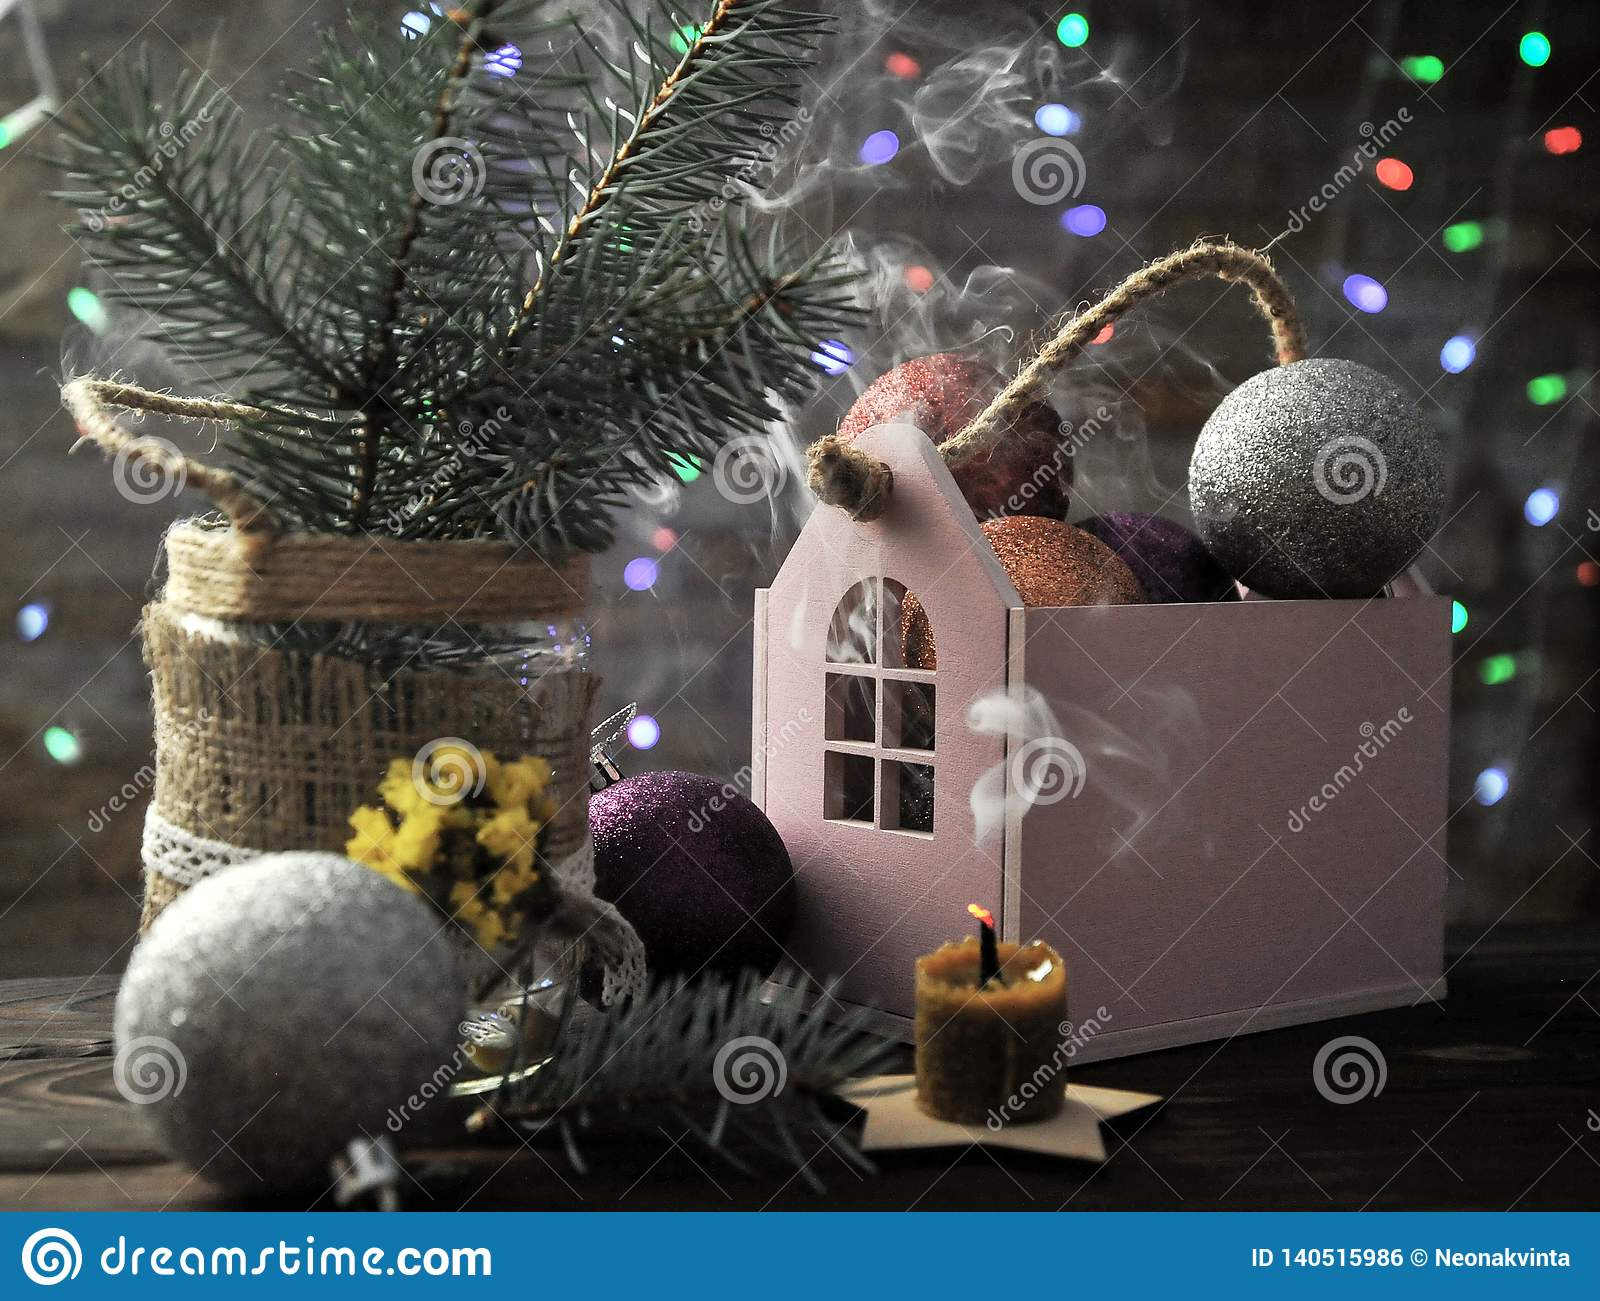 Christmas composition with a candle, a house and Christmas decorations on a table